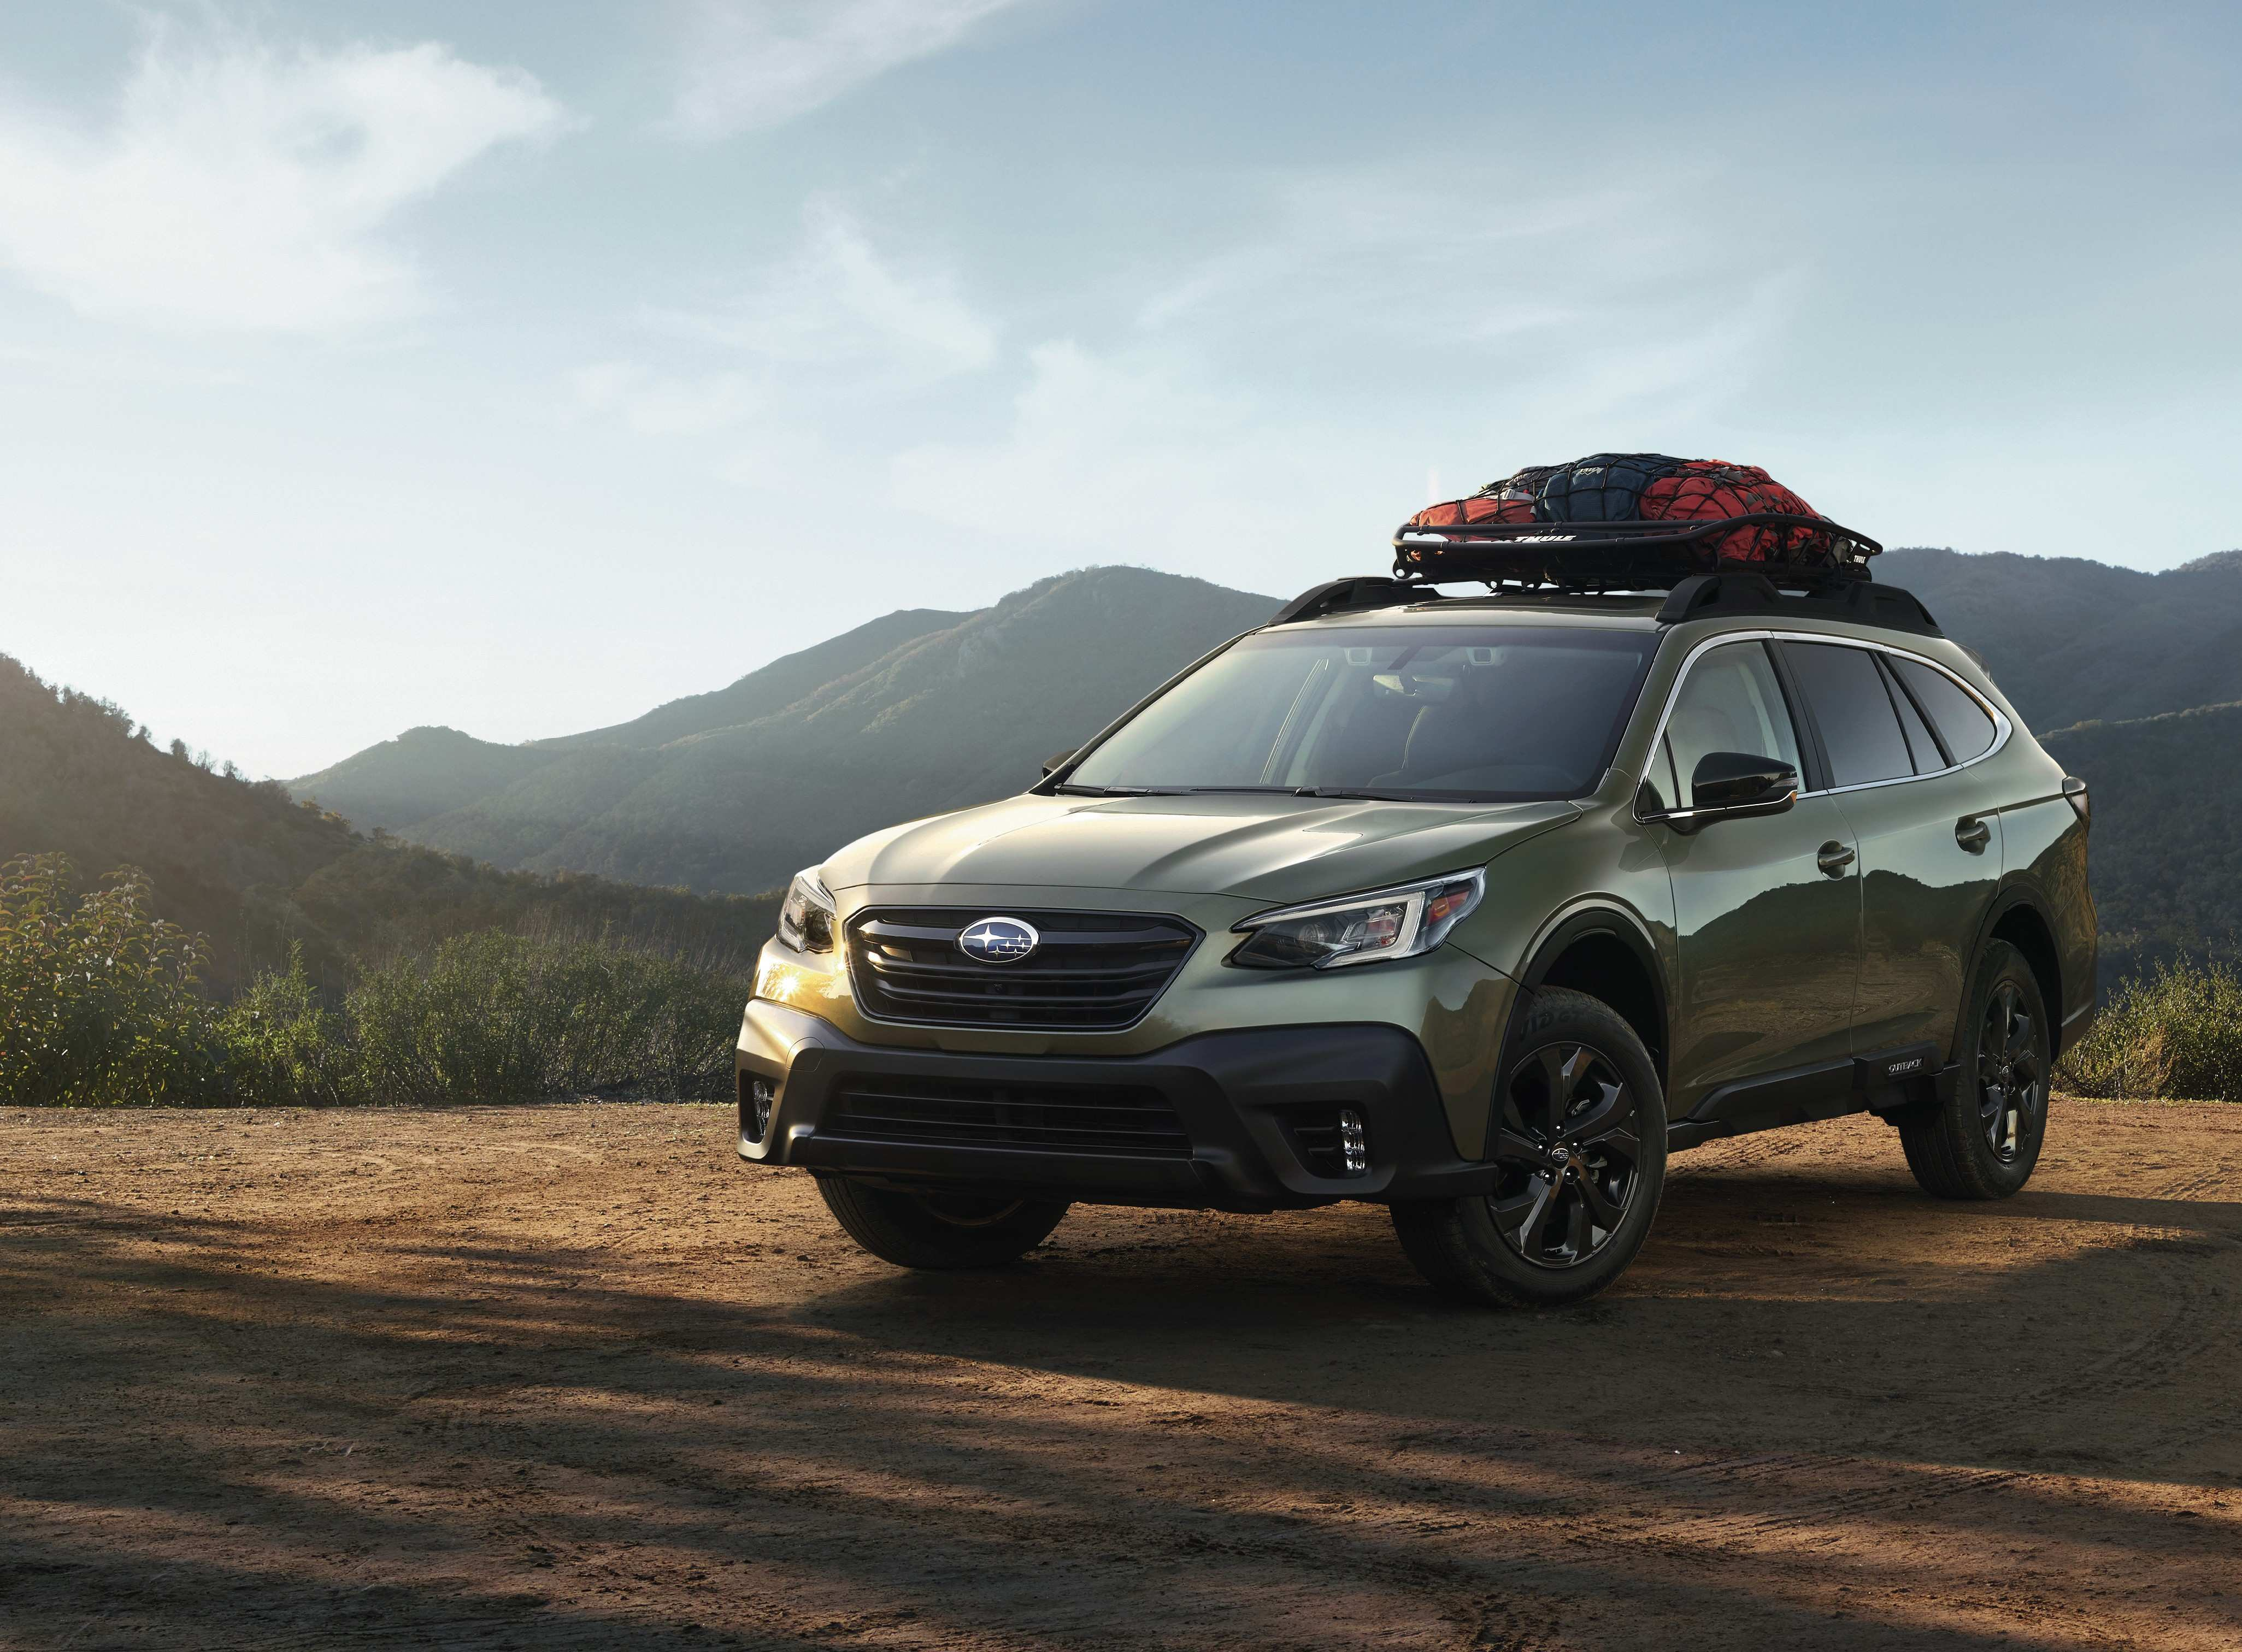 23 Great When Will 2020 Subaru Outback Be Available Ratings with When Will 2020 Subaru Outback Be Available